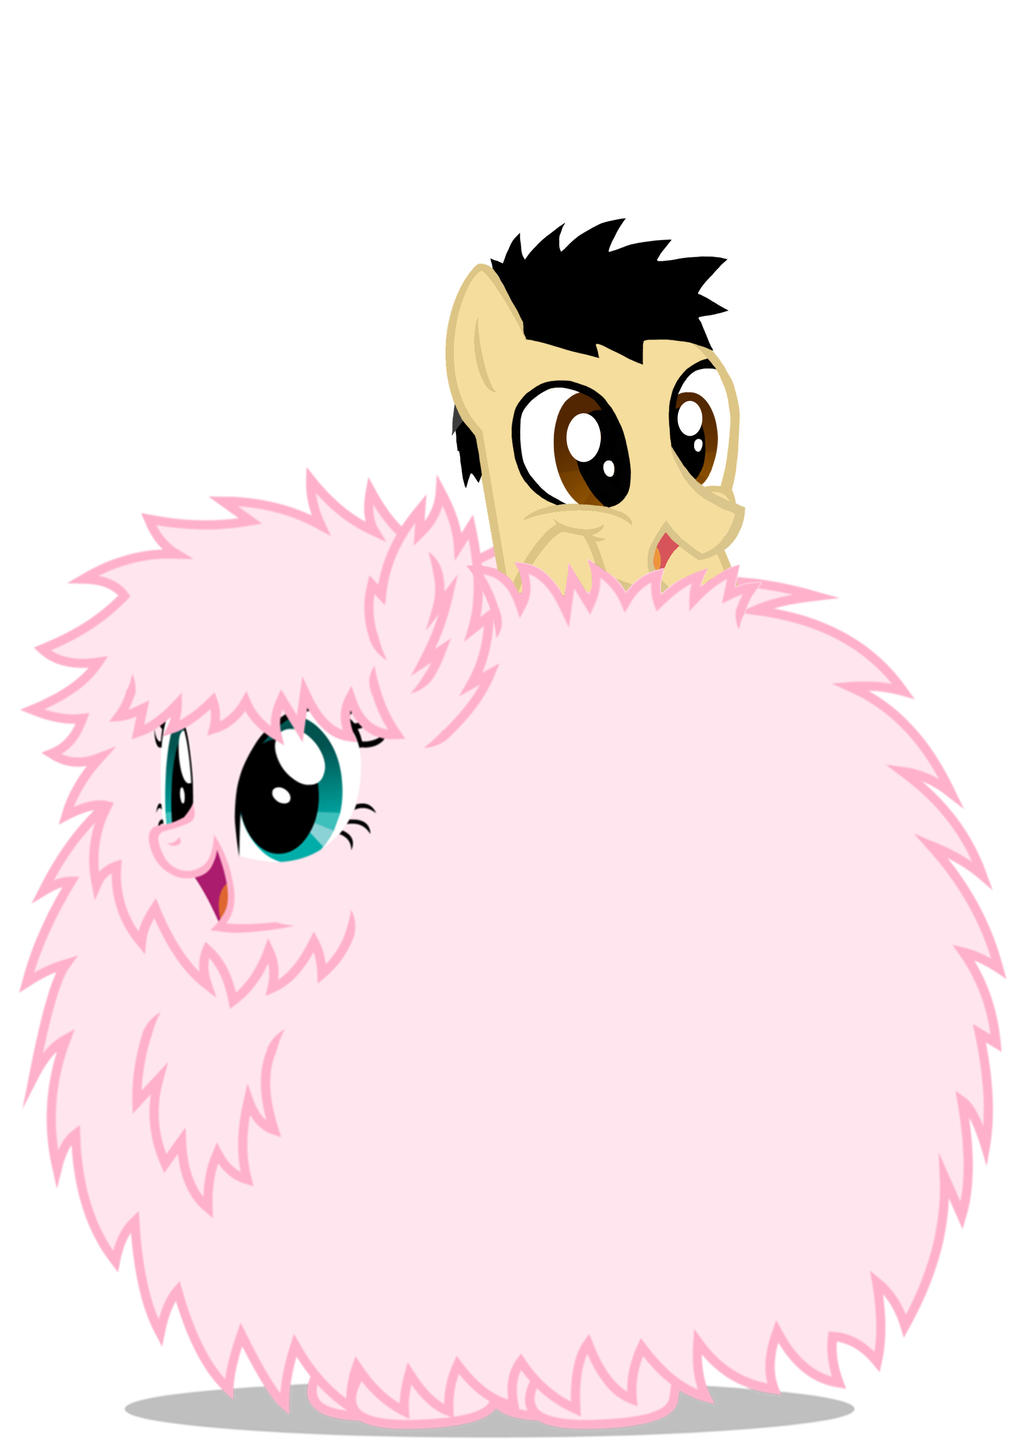 XD by Dragonsmiter45 Fluffle Puff is KAWAII!!! XD by Dragonsmiter45